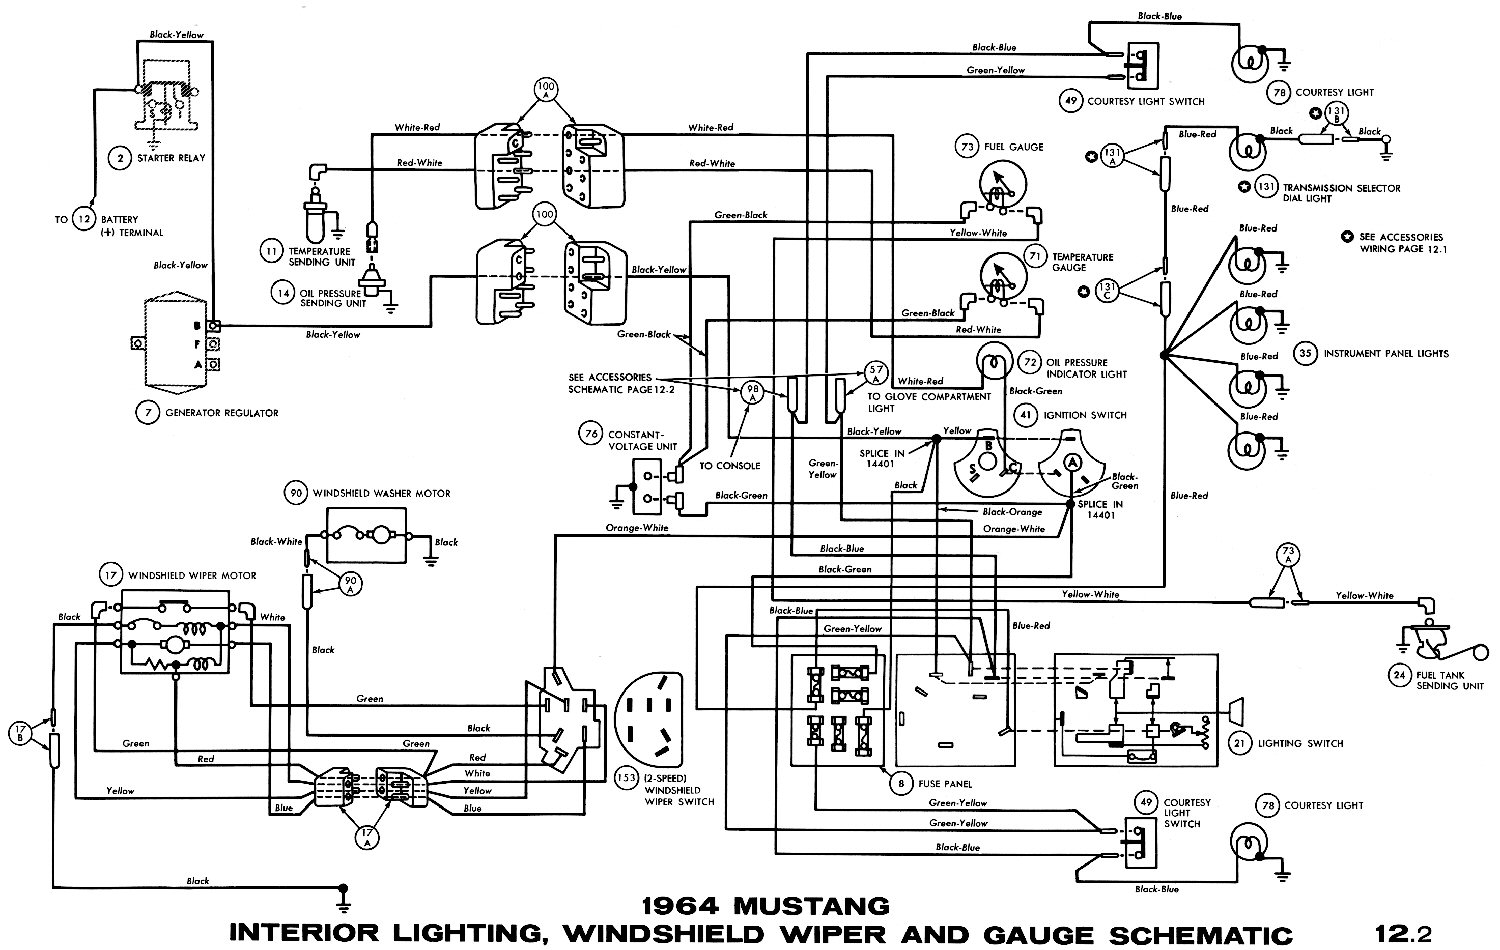 1964k 1964 mustang wiring diagrams average joe restoration 1965 ford mustang wiring diagram at crackthecode.co